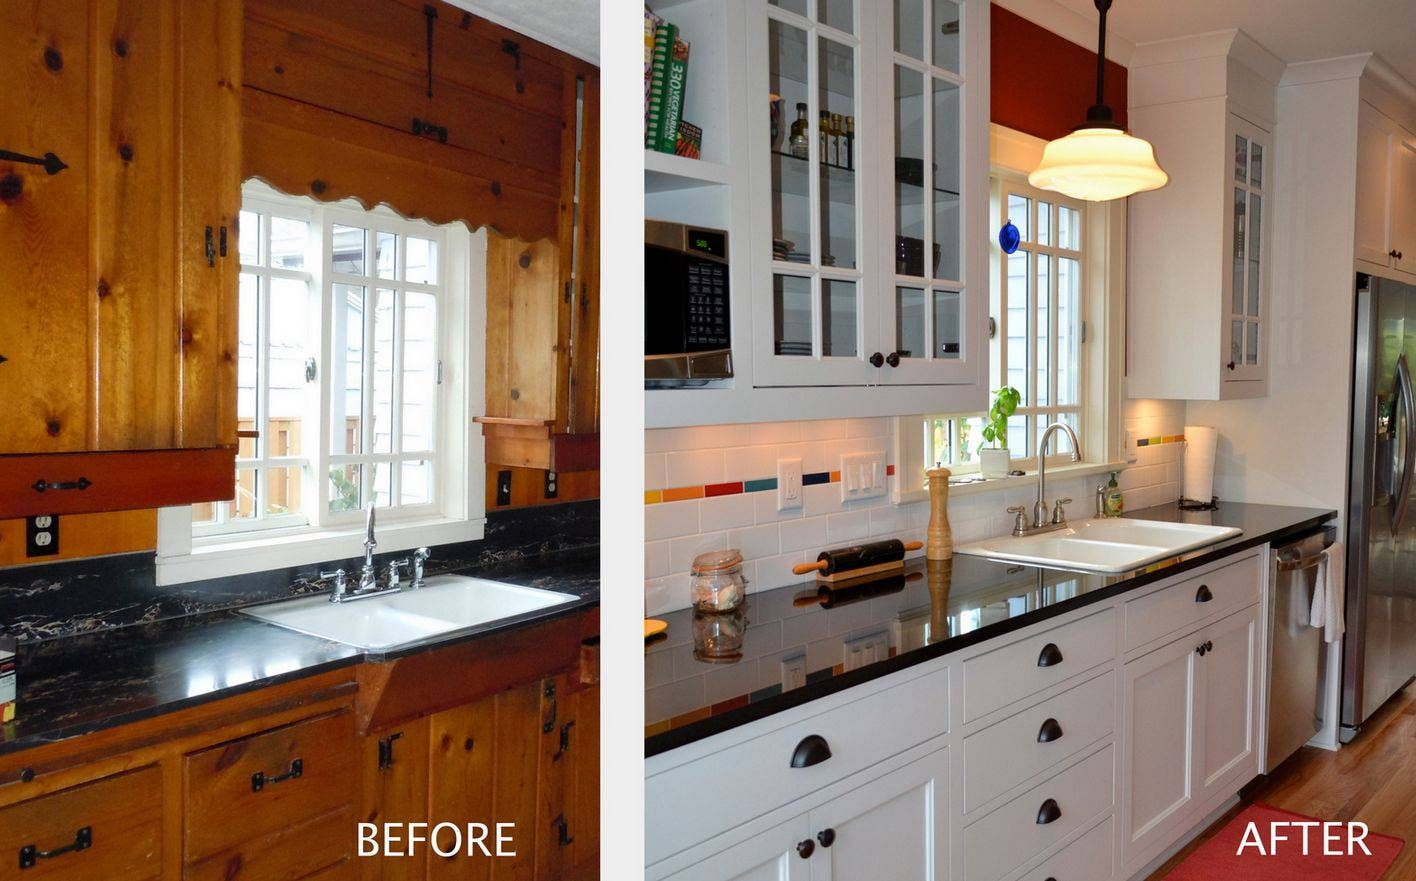 Get Inspired for Your Remodel With These Stylish Kitchen